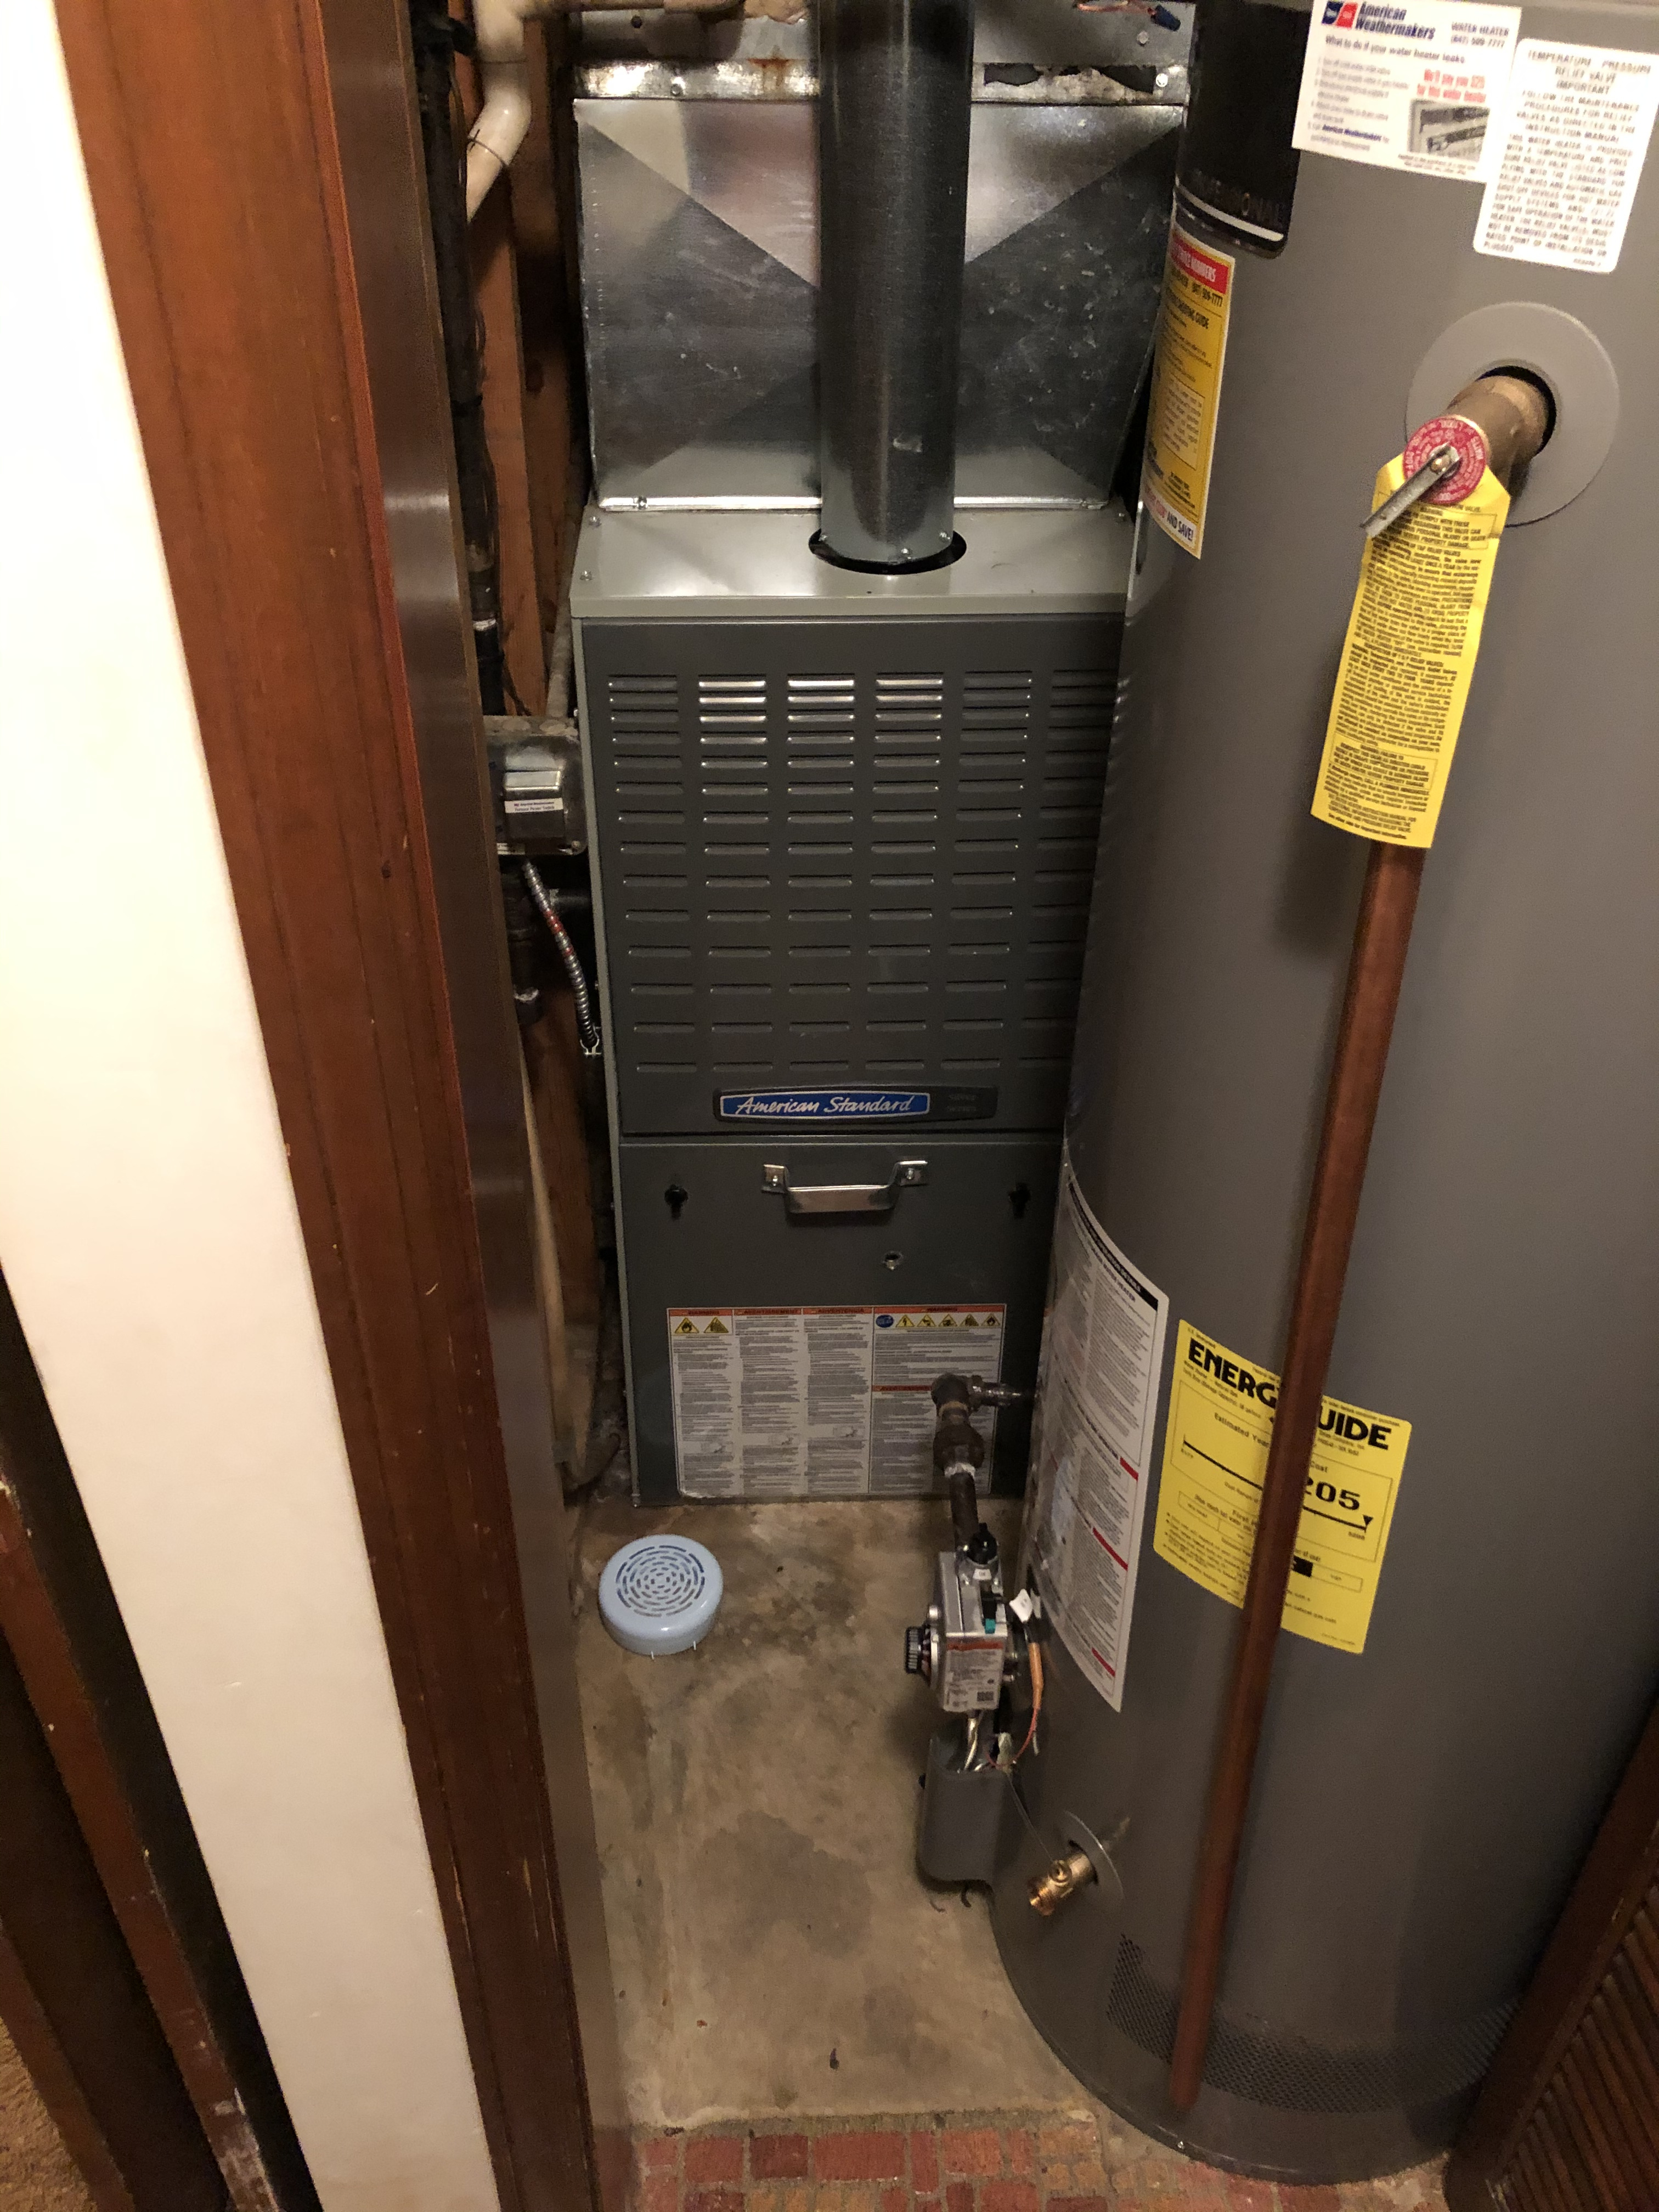 An American Standard furnace with a tight squeeze.